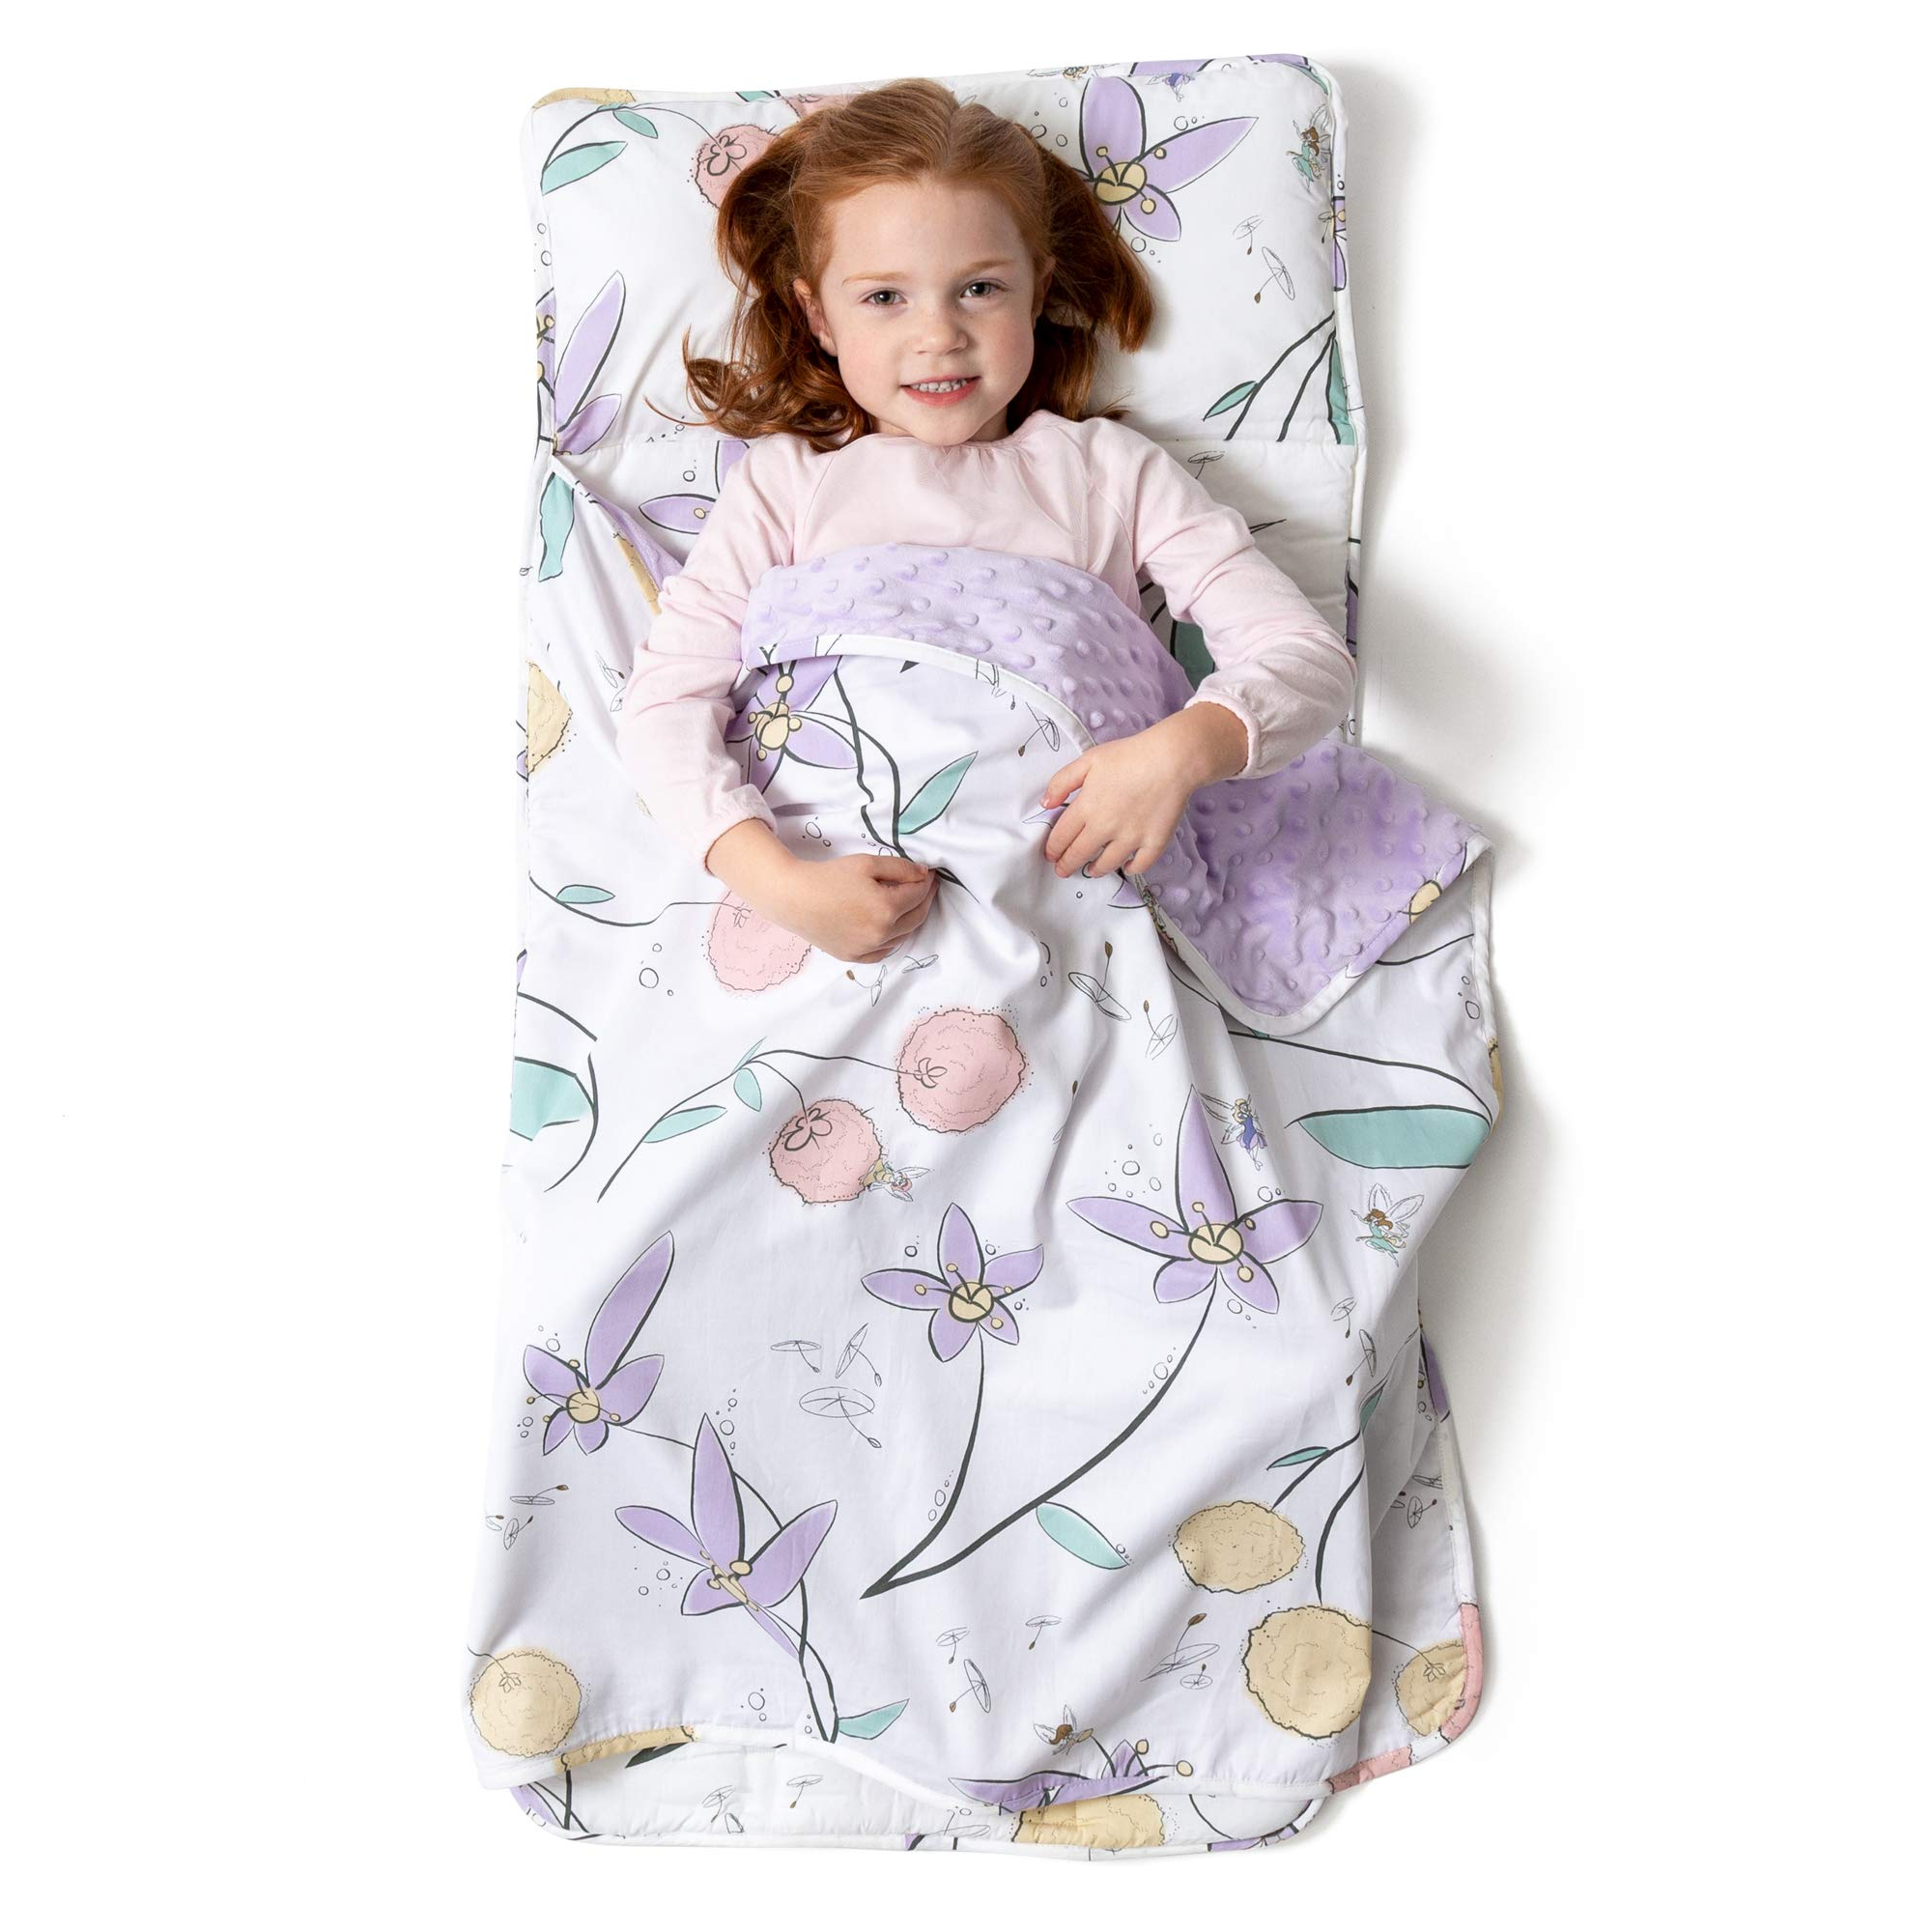 JumpOff Jo - Little Jo's Toddler Nap Mat - Children Sleeping Bag with Removable Pillow for Preschool, Daycare, and Sleepovers - Original Design: Fairy Blossoms (43'' x 21'') by JumpOff Jo